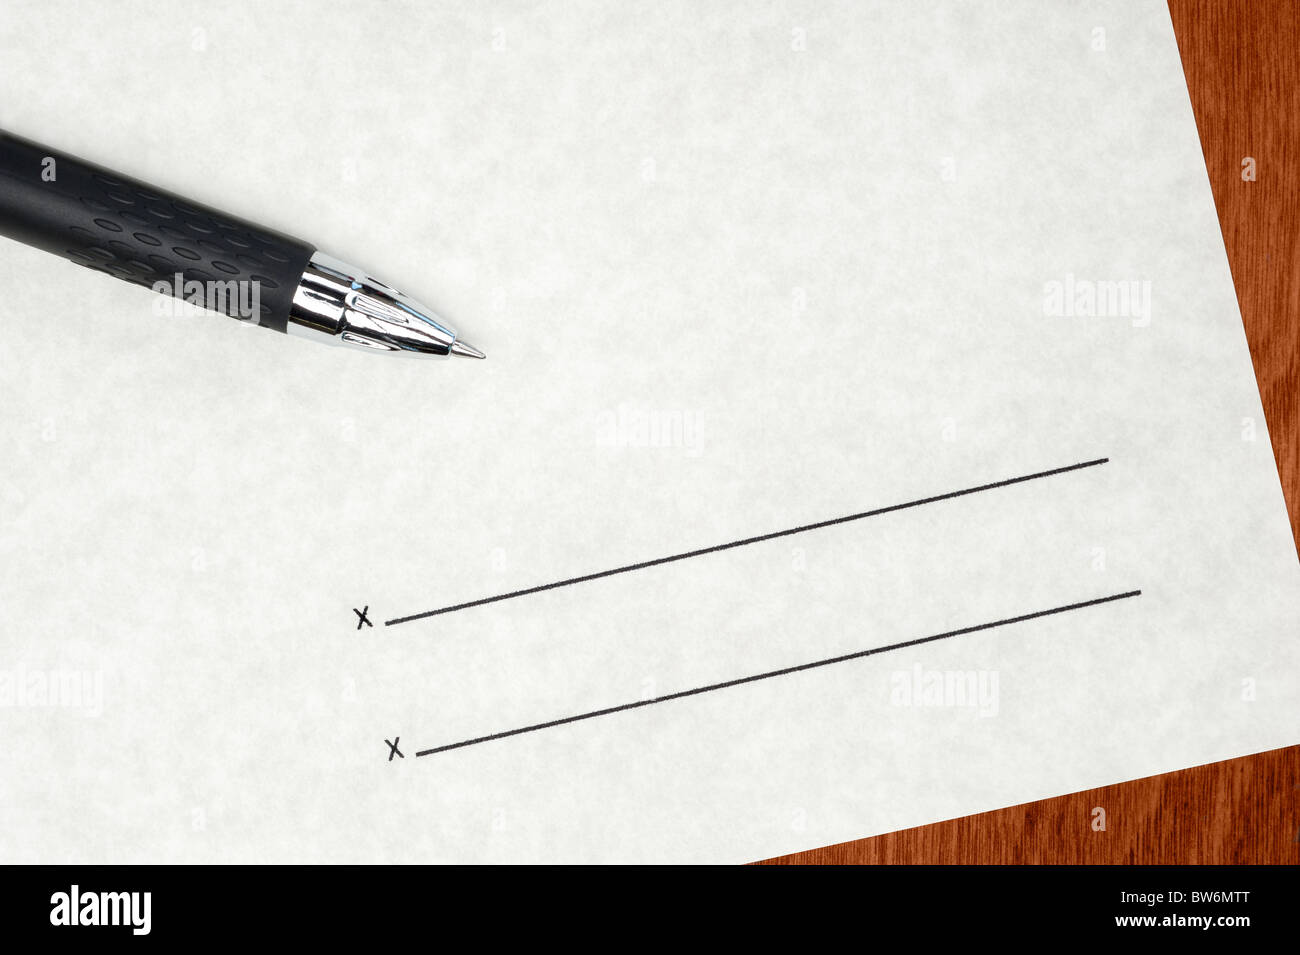 A blank contract waiting to be signed Stock Photo: 32724856 - Alamy